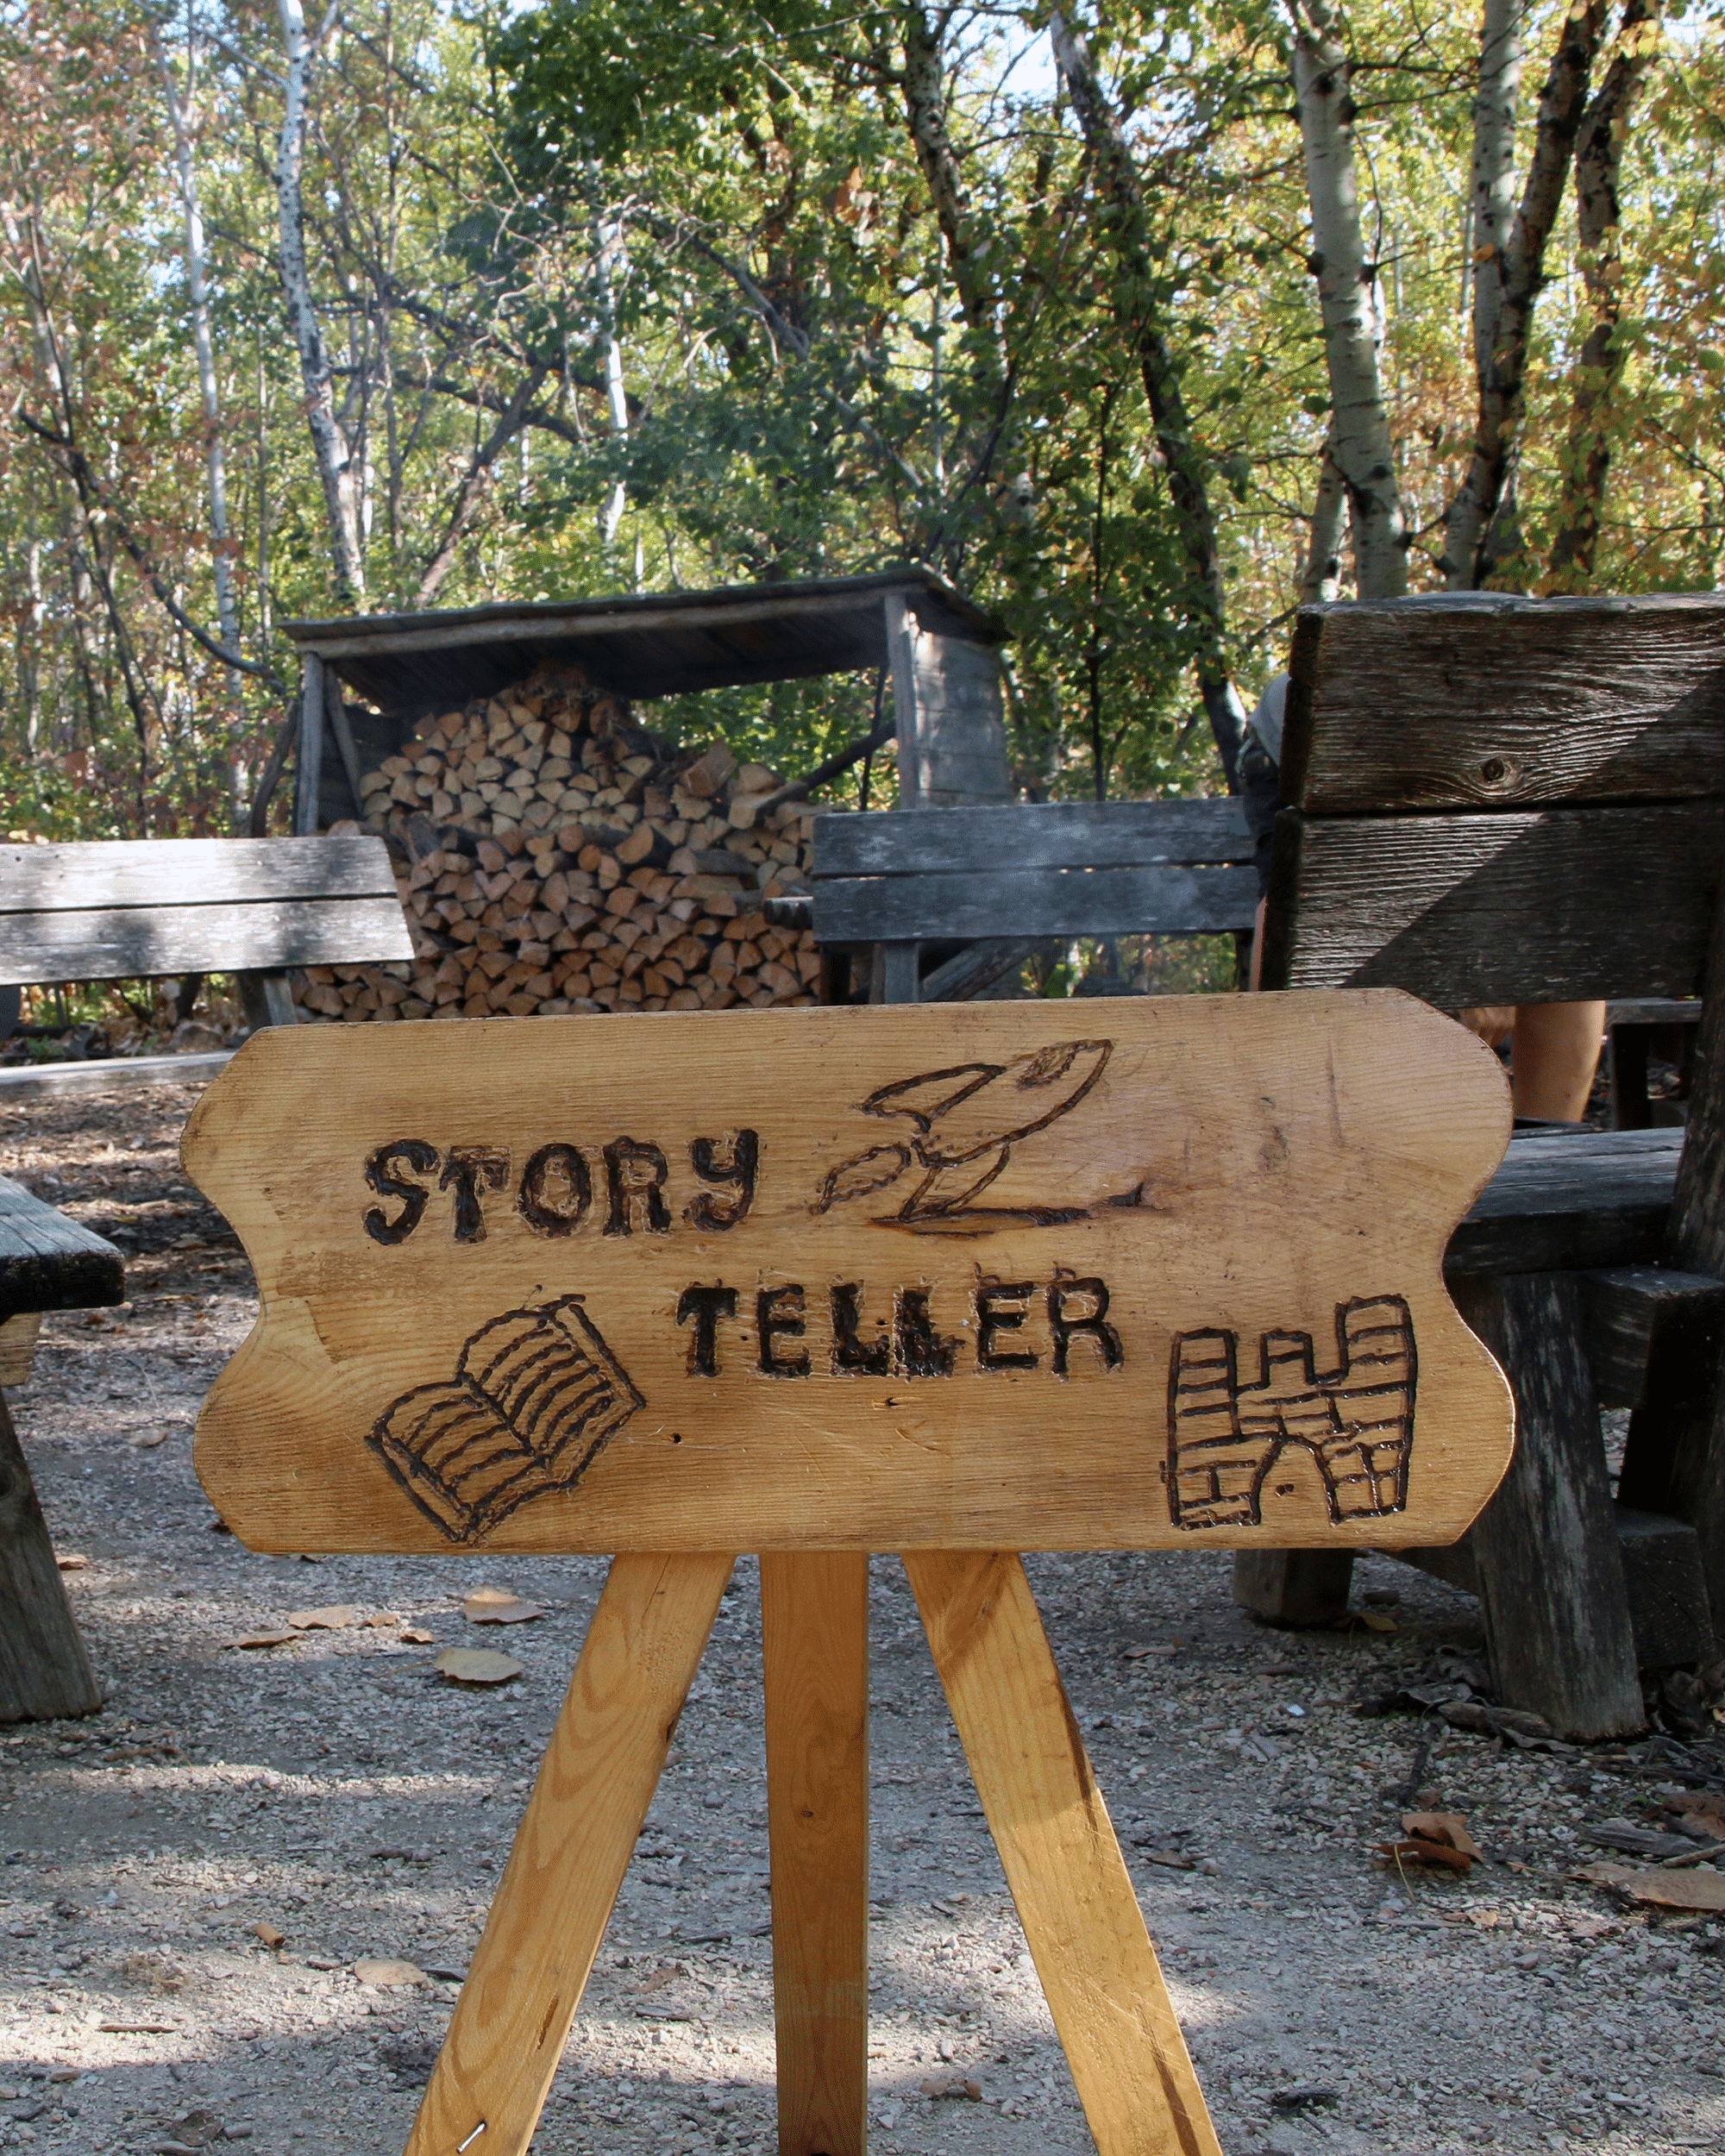 A wooden sign has Storyteller etched into it.